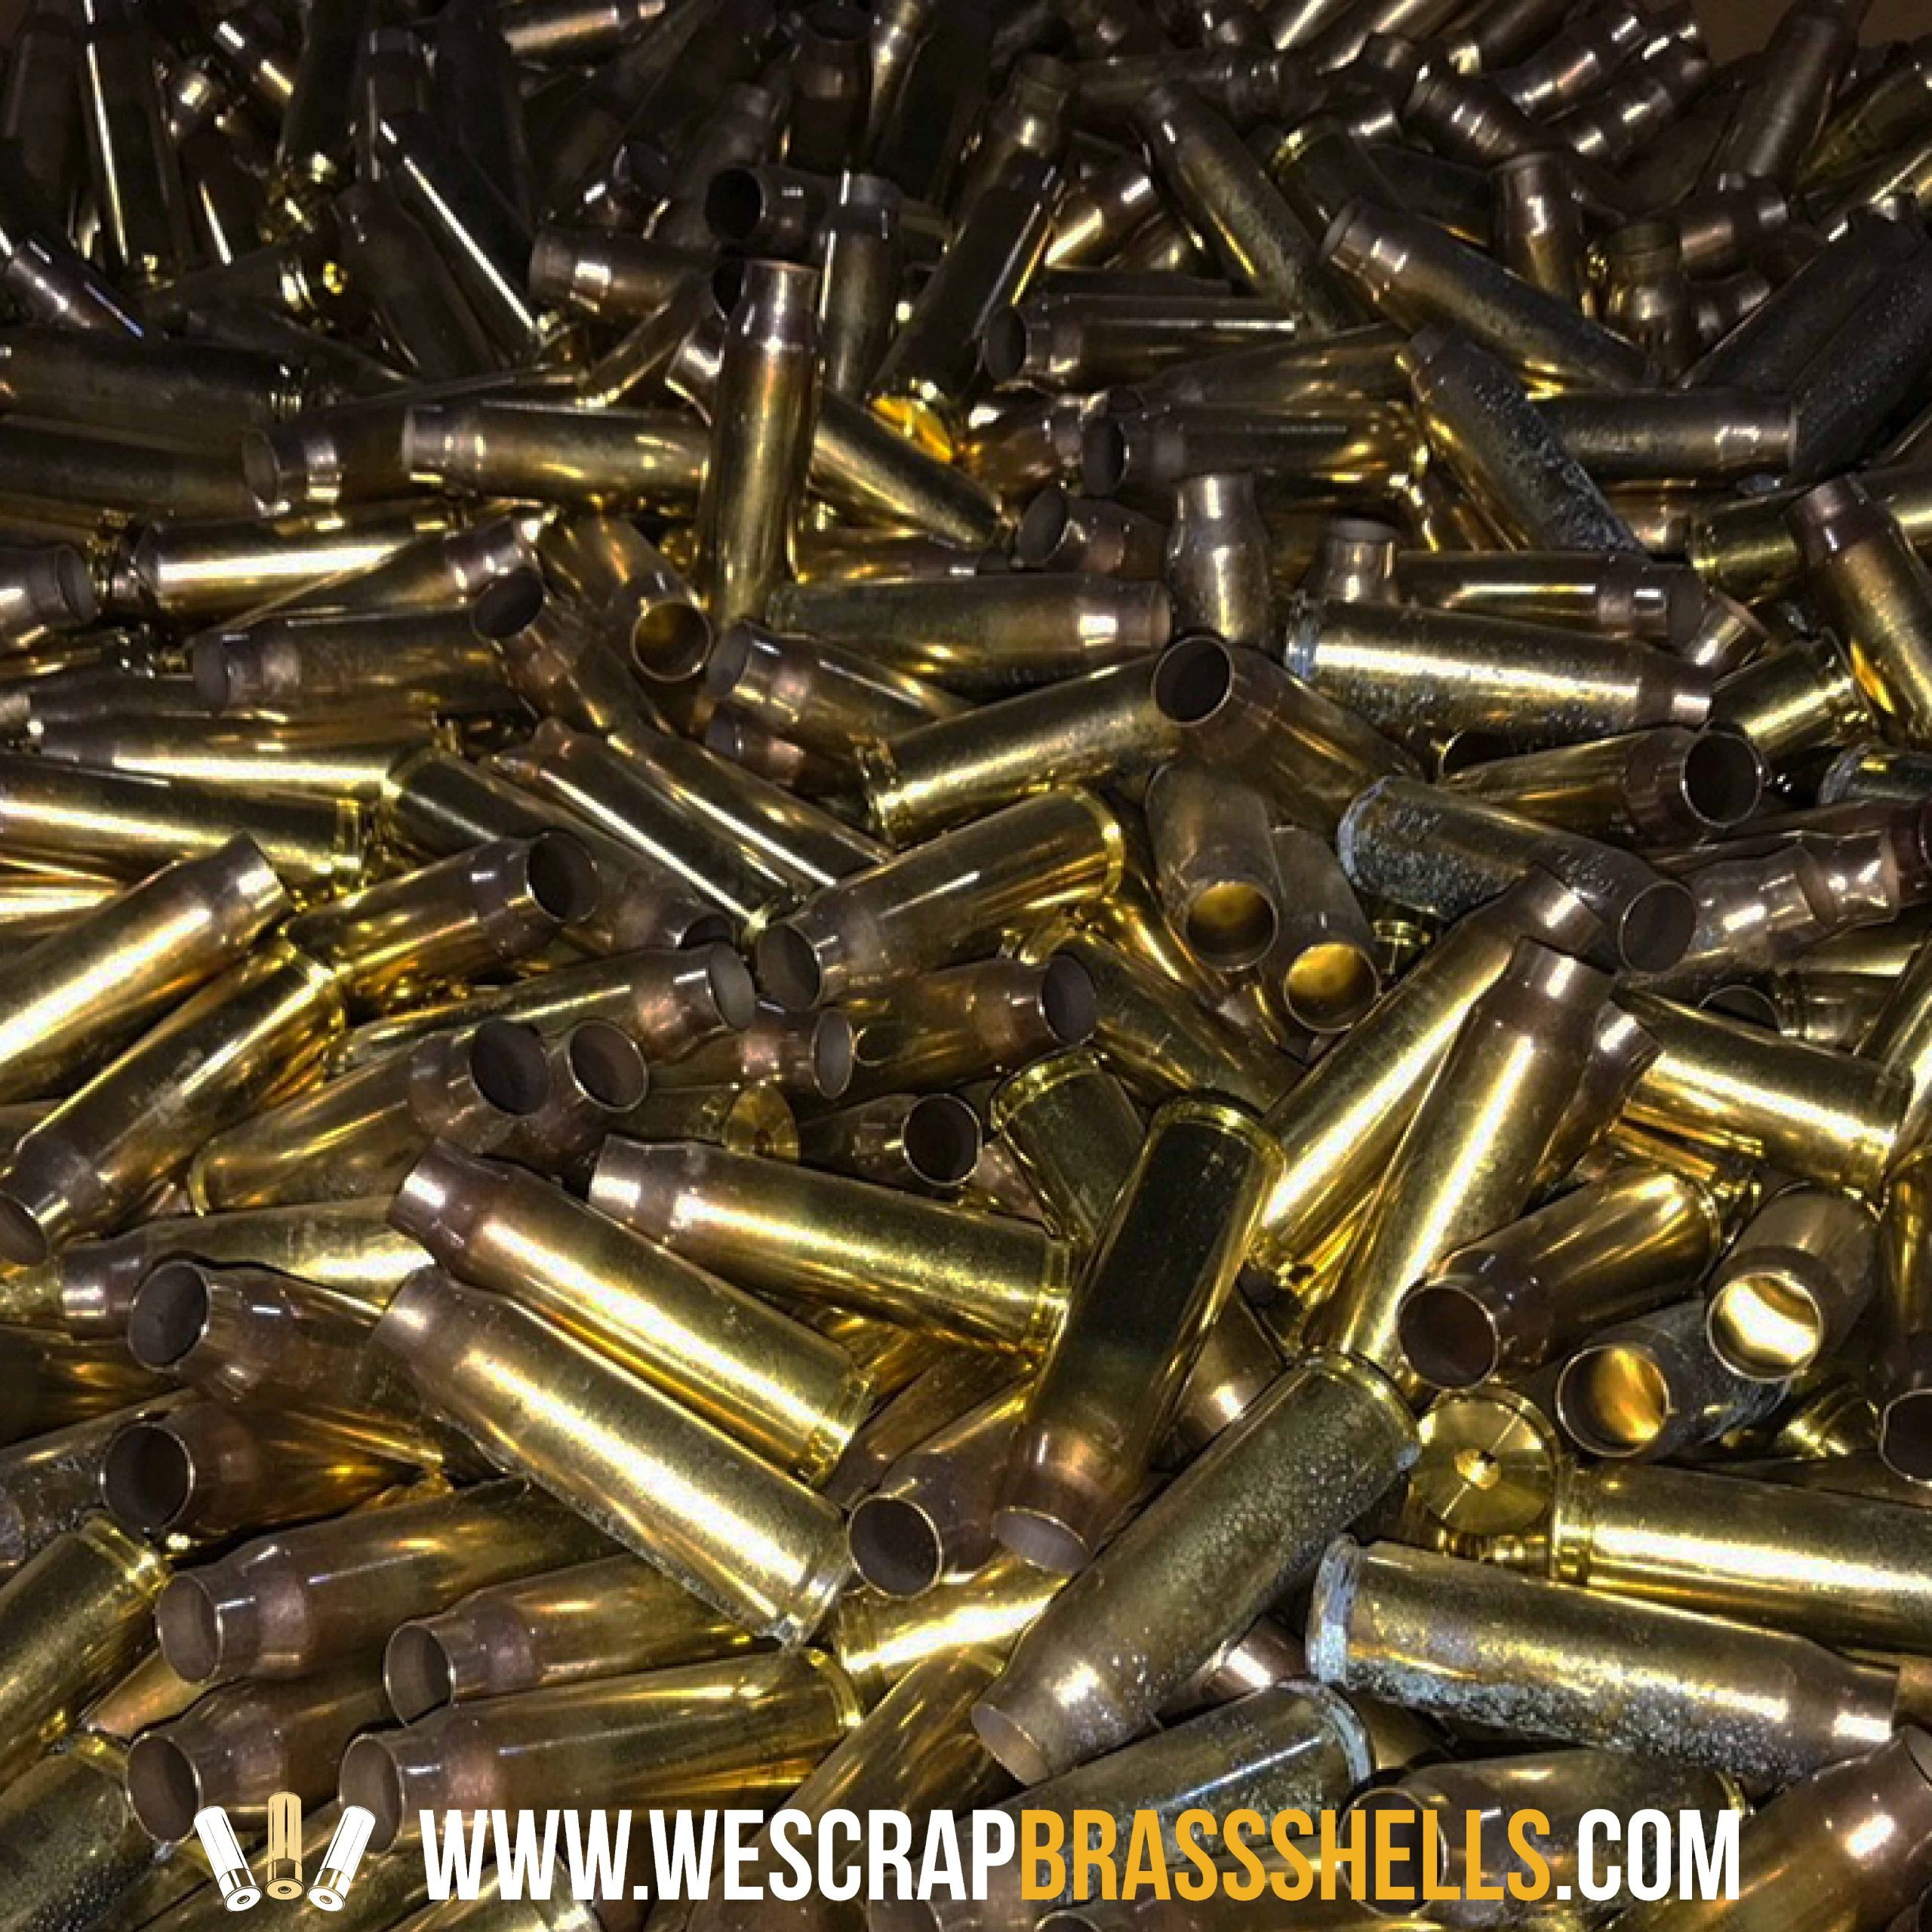 Why Is It Important to Recycle Scrap Ammo?